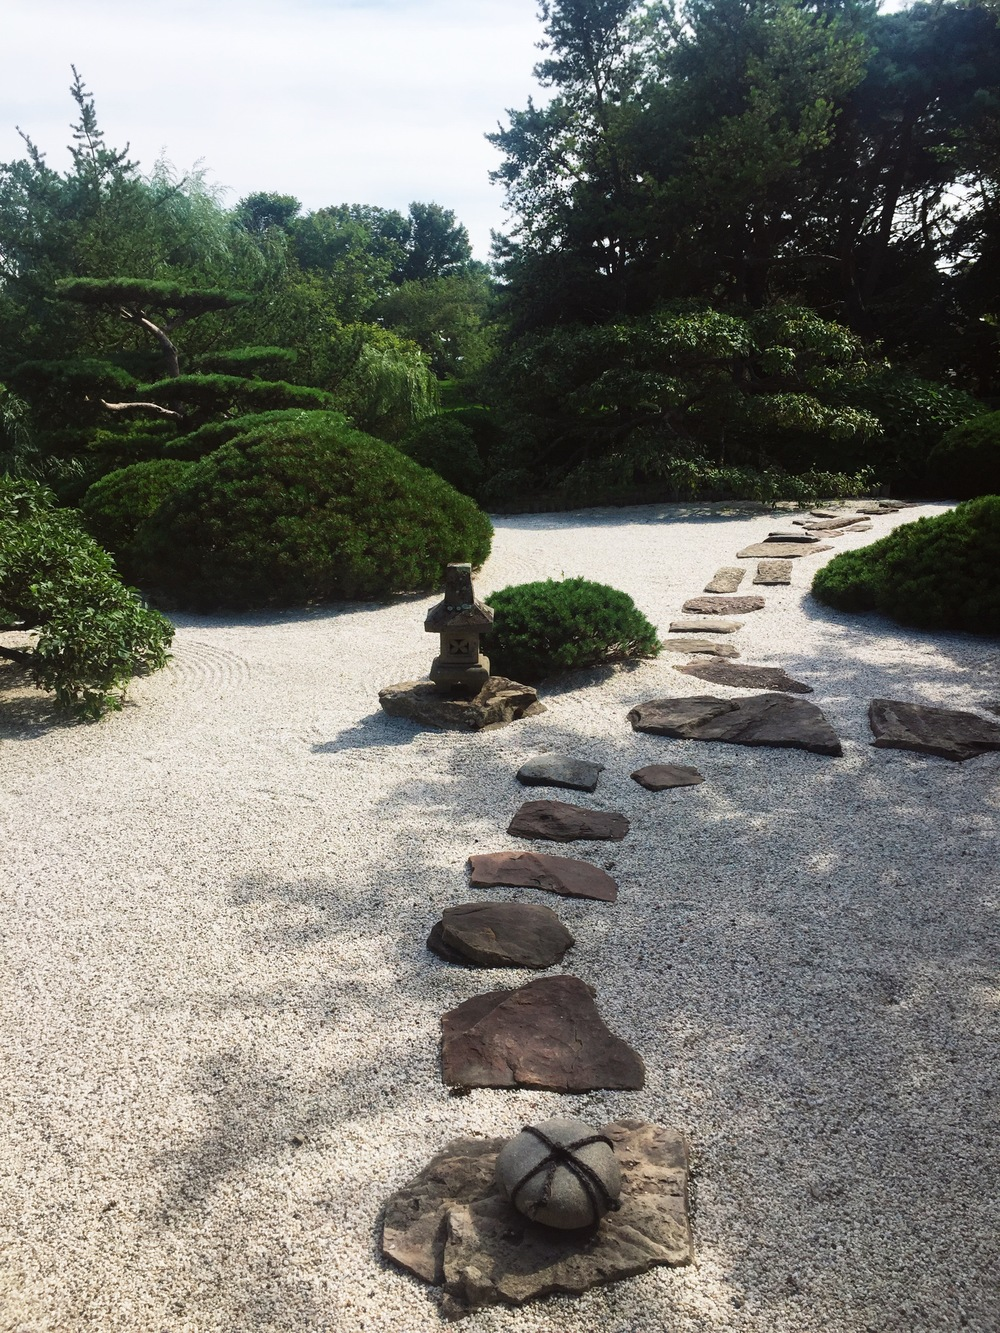 The rock garden in the Japanese garden section